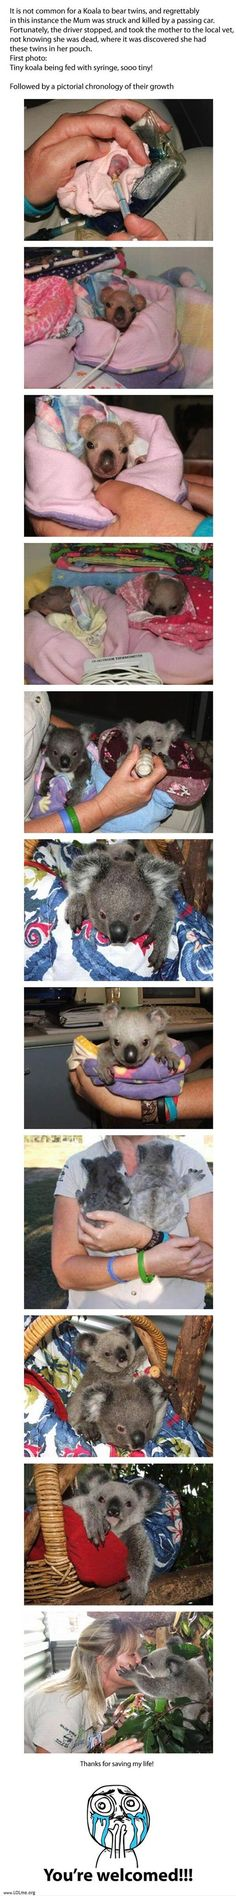 baby Koala Life Story. Great story with a happy ending!